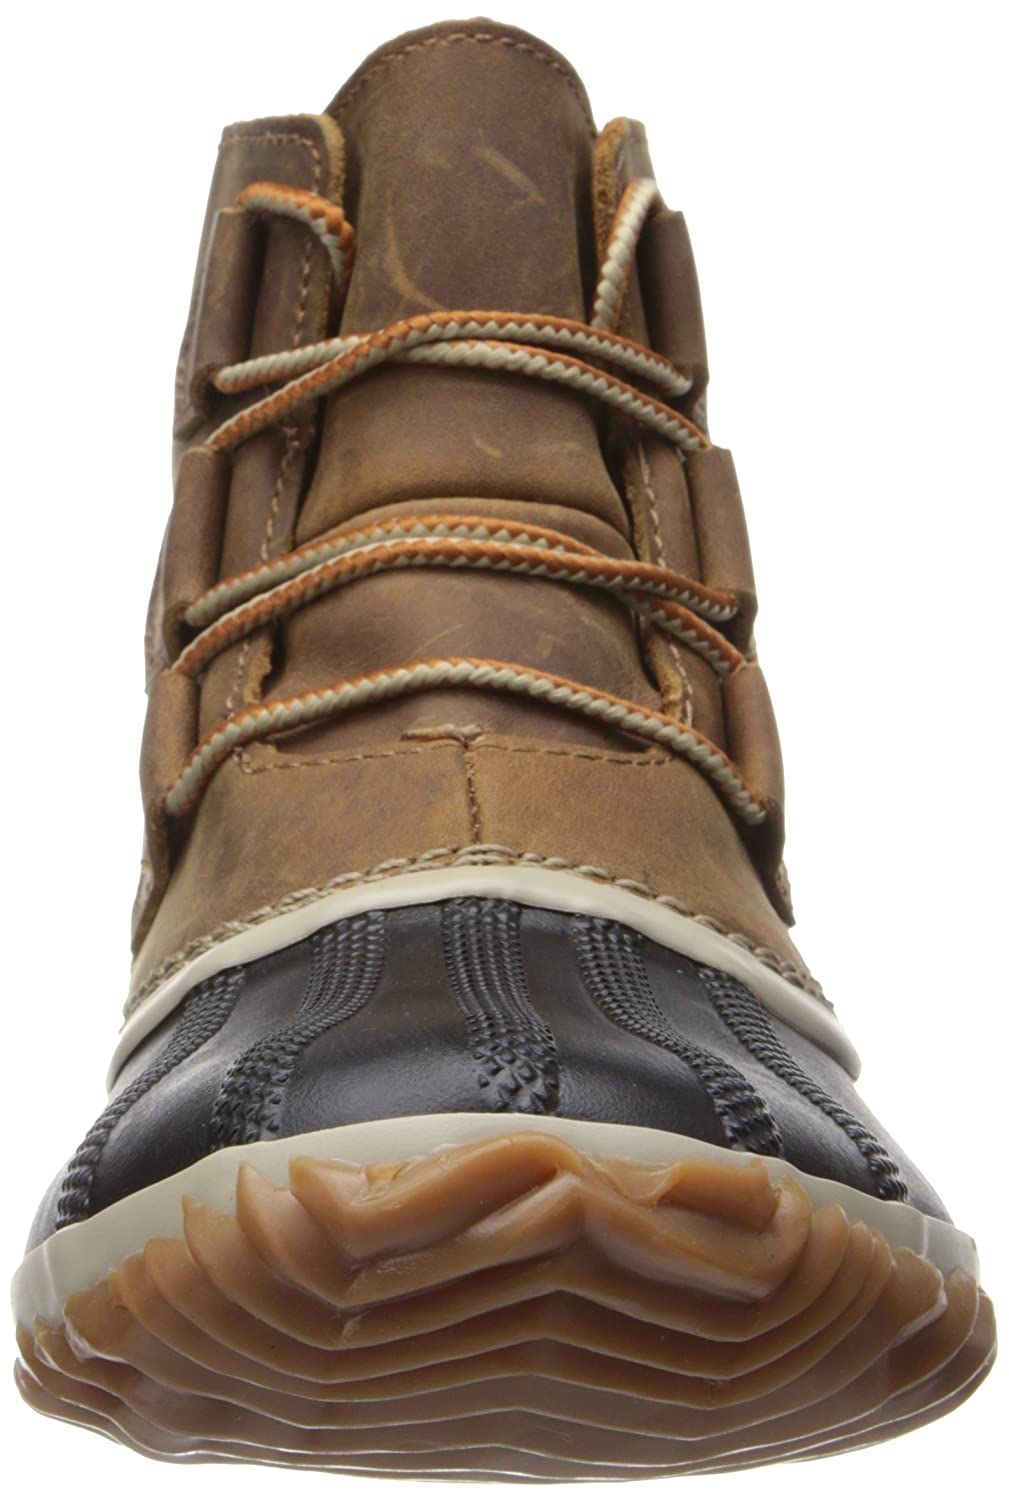 Sorel Womens Out N About Leather Rain Snow Boot Hoppy Tail Light Converter Wiring Diagram Shoes Handbags